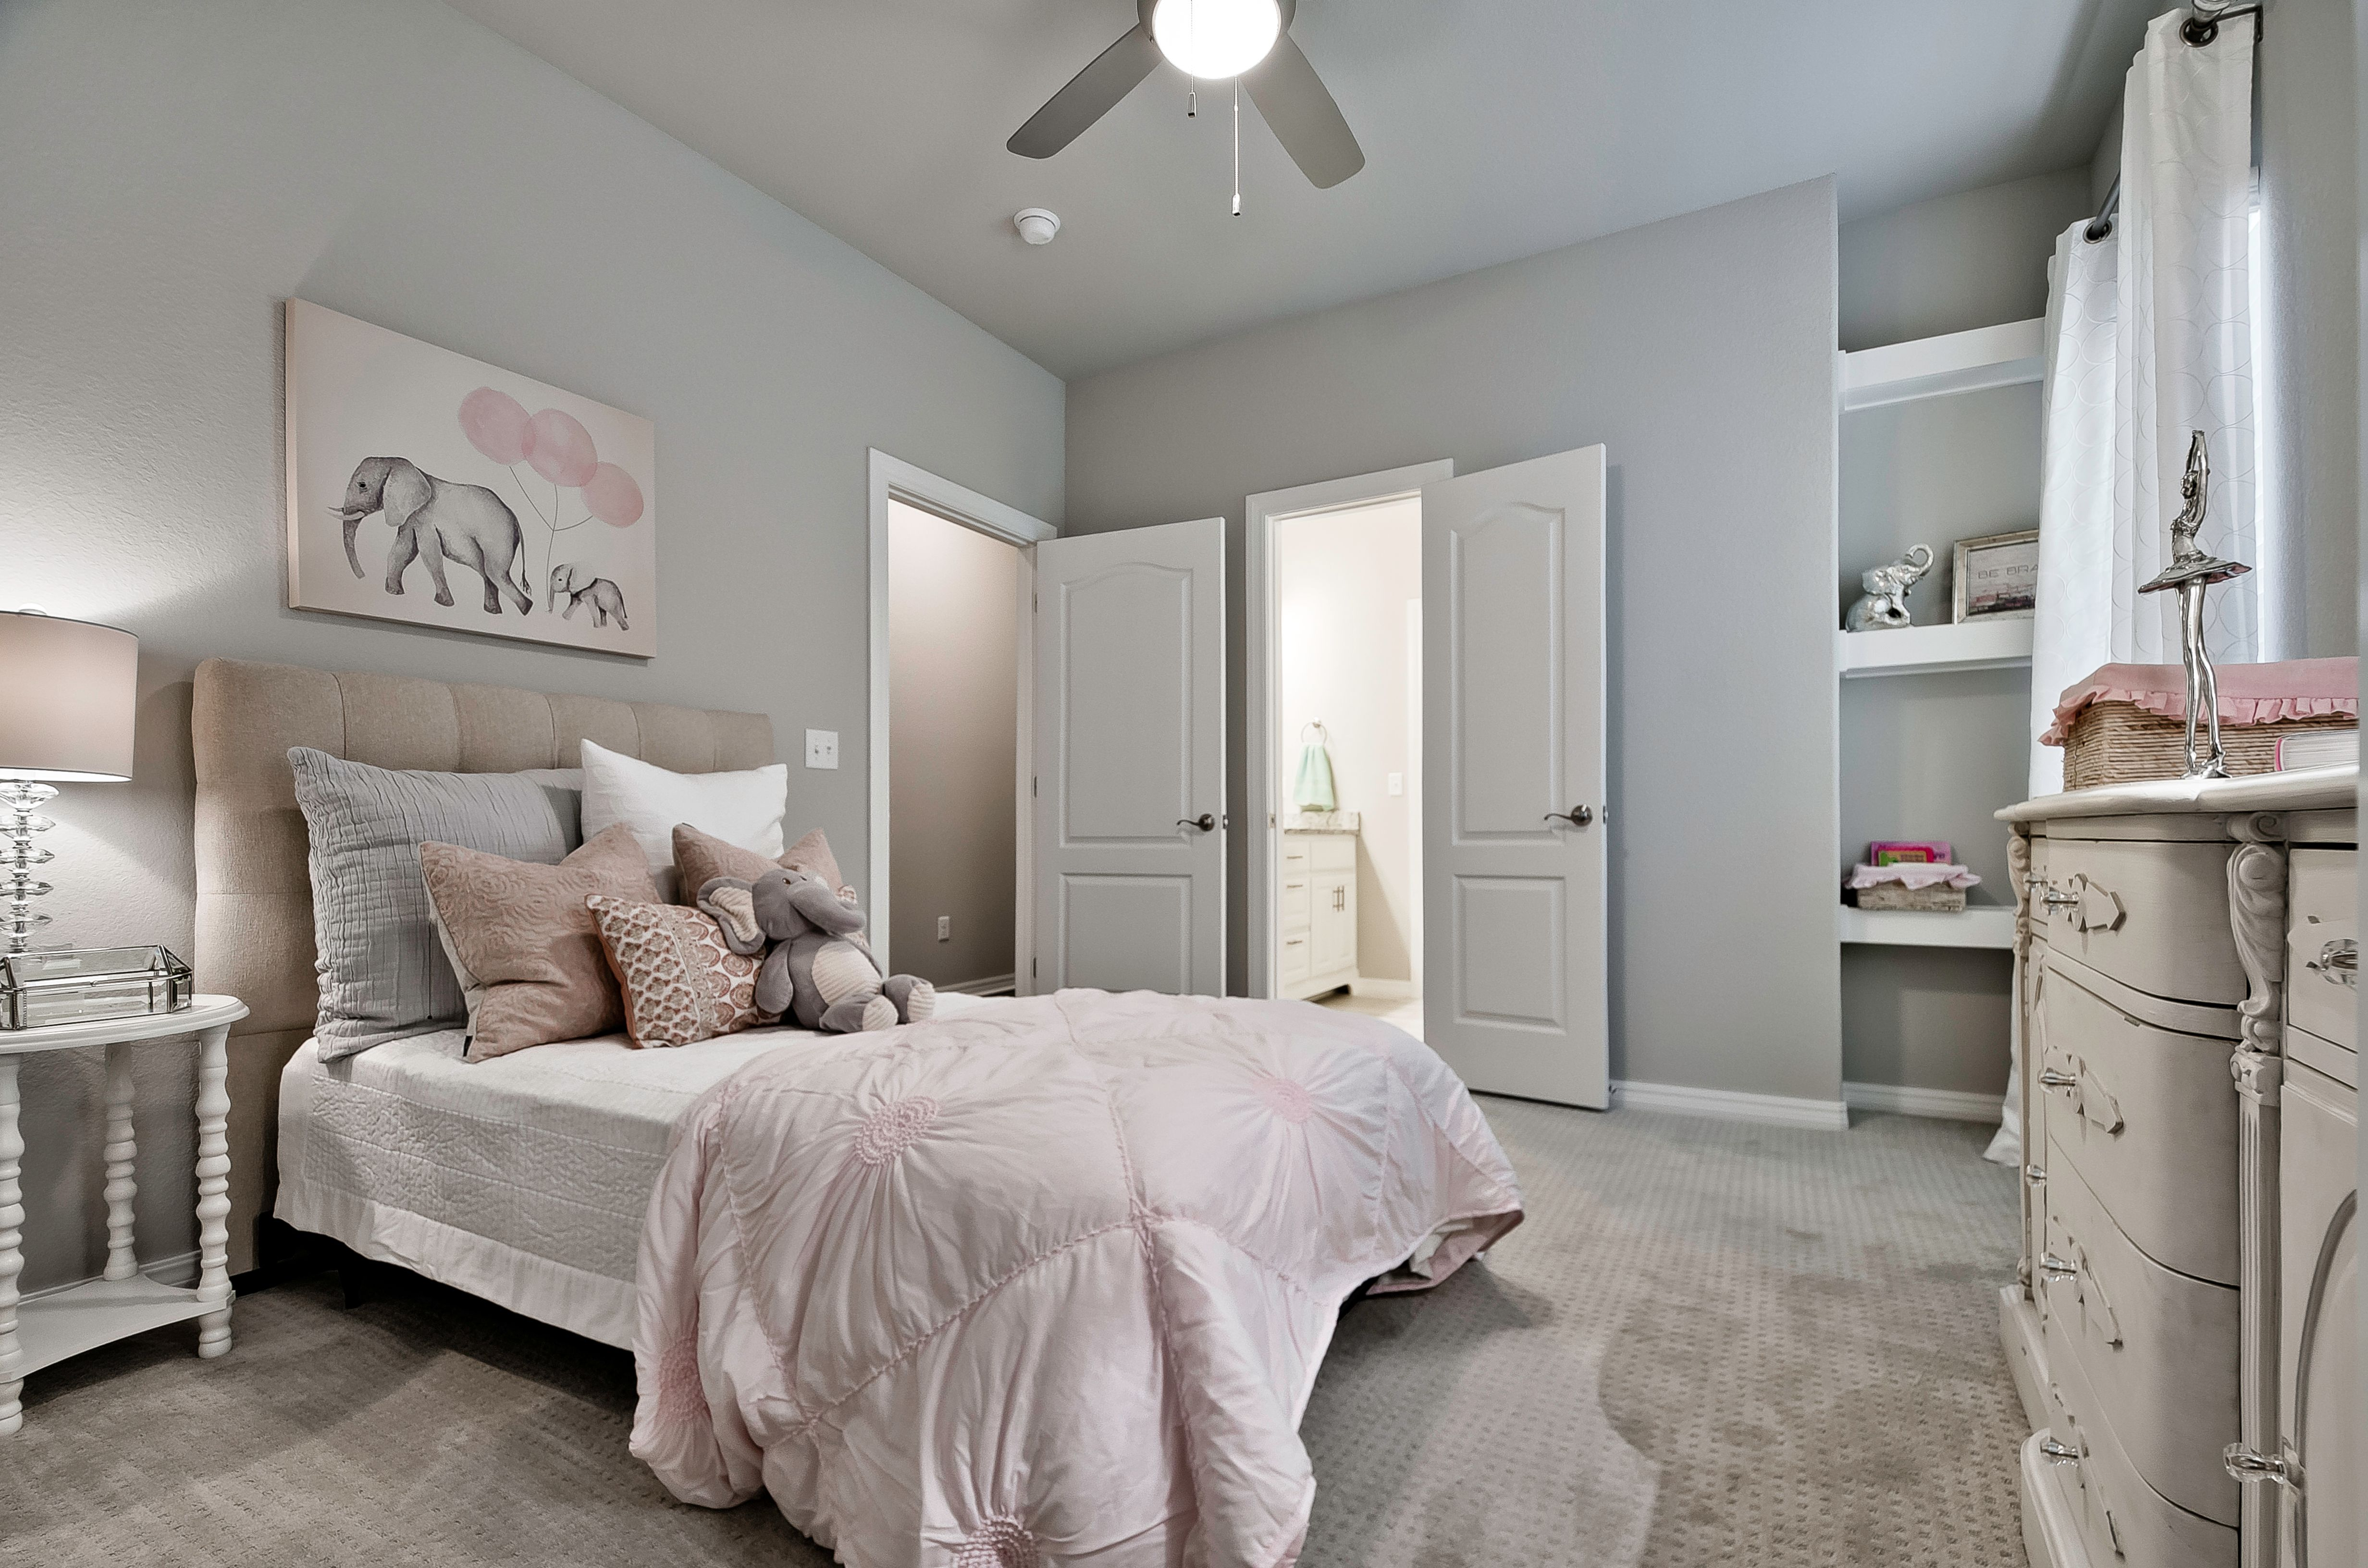 Bedroom featured in the Quartz 2475 By Riverwood Homes - Arkansas in Fayetteville, AR